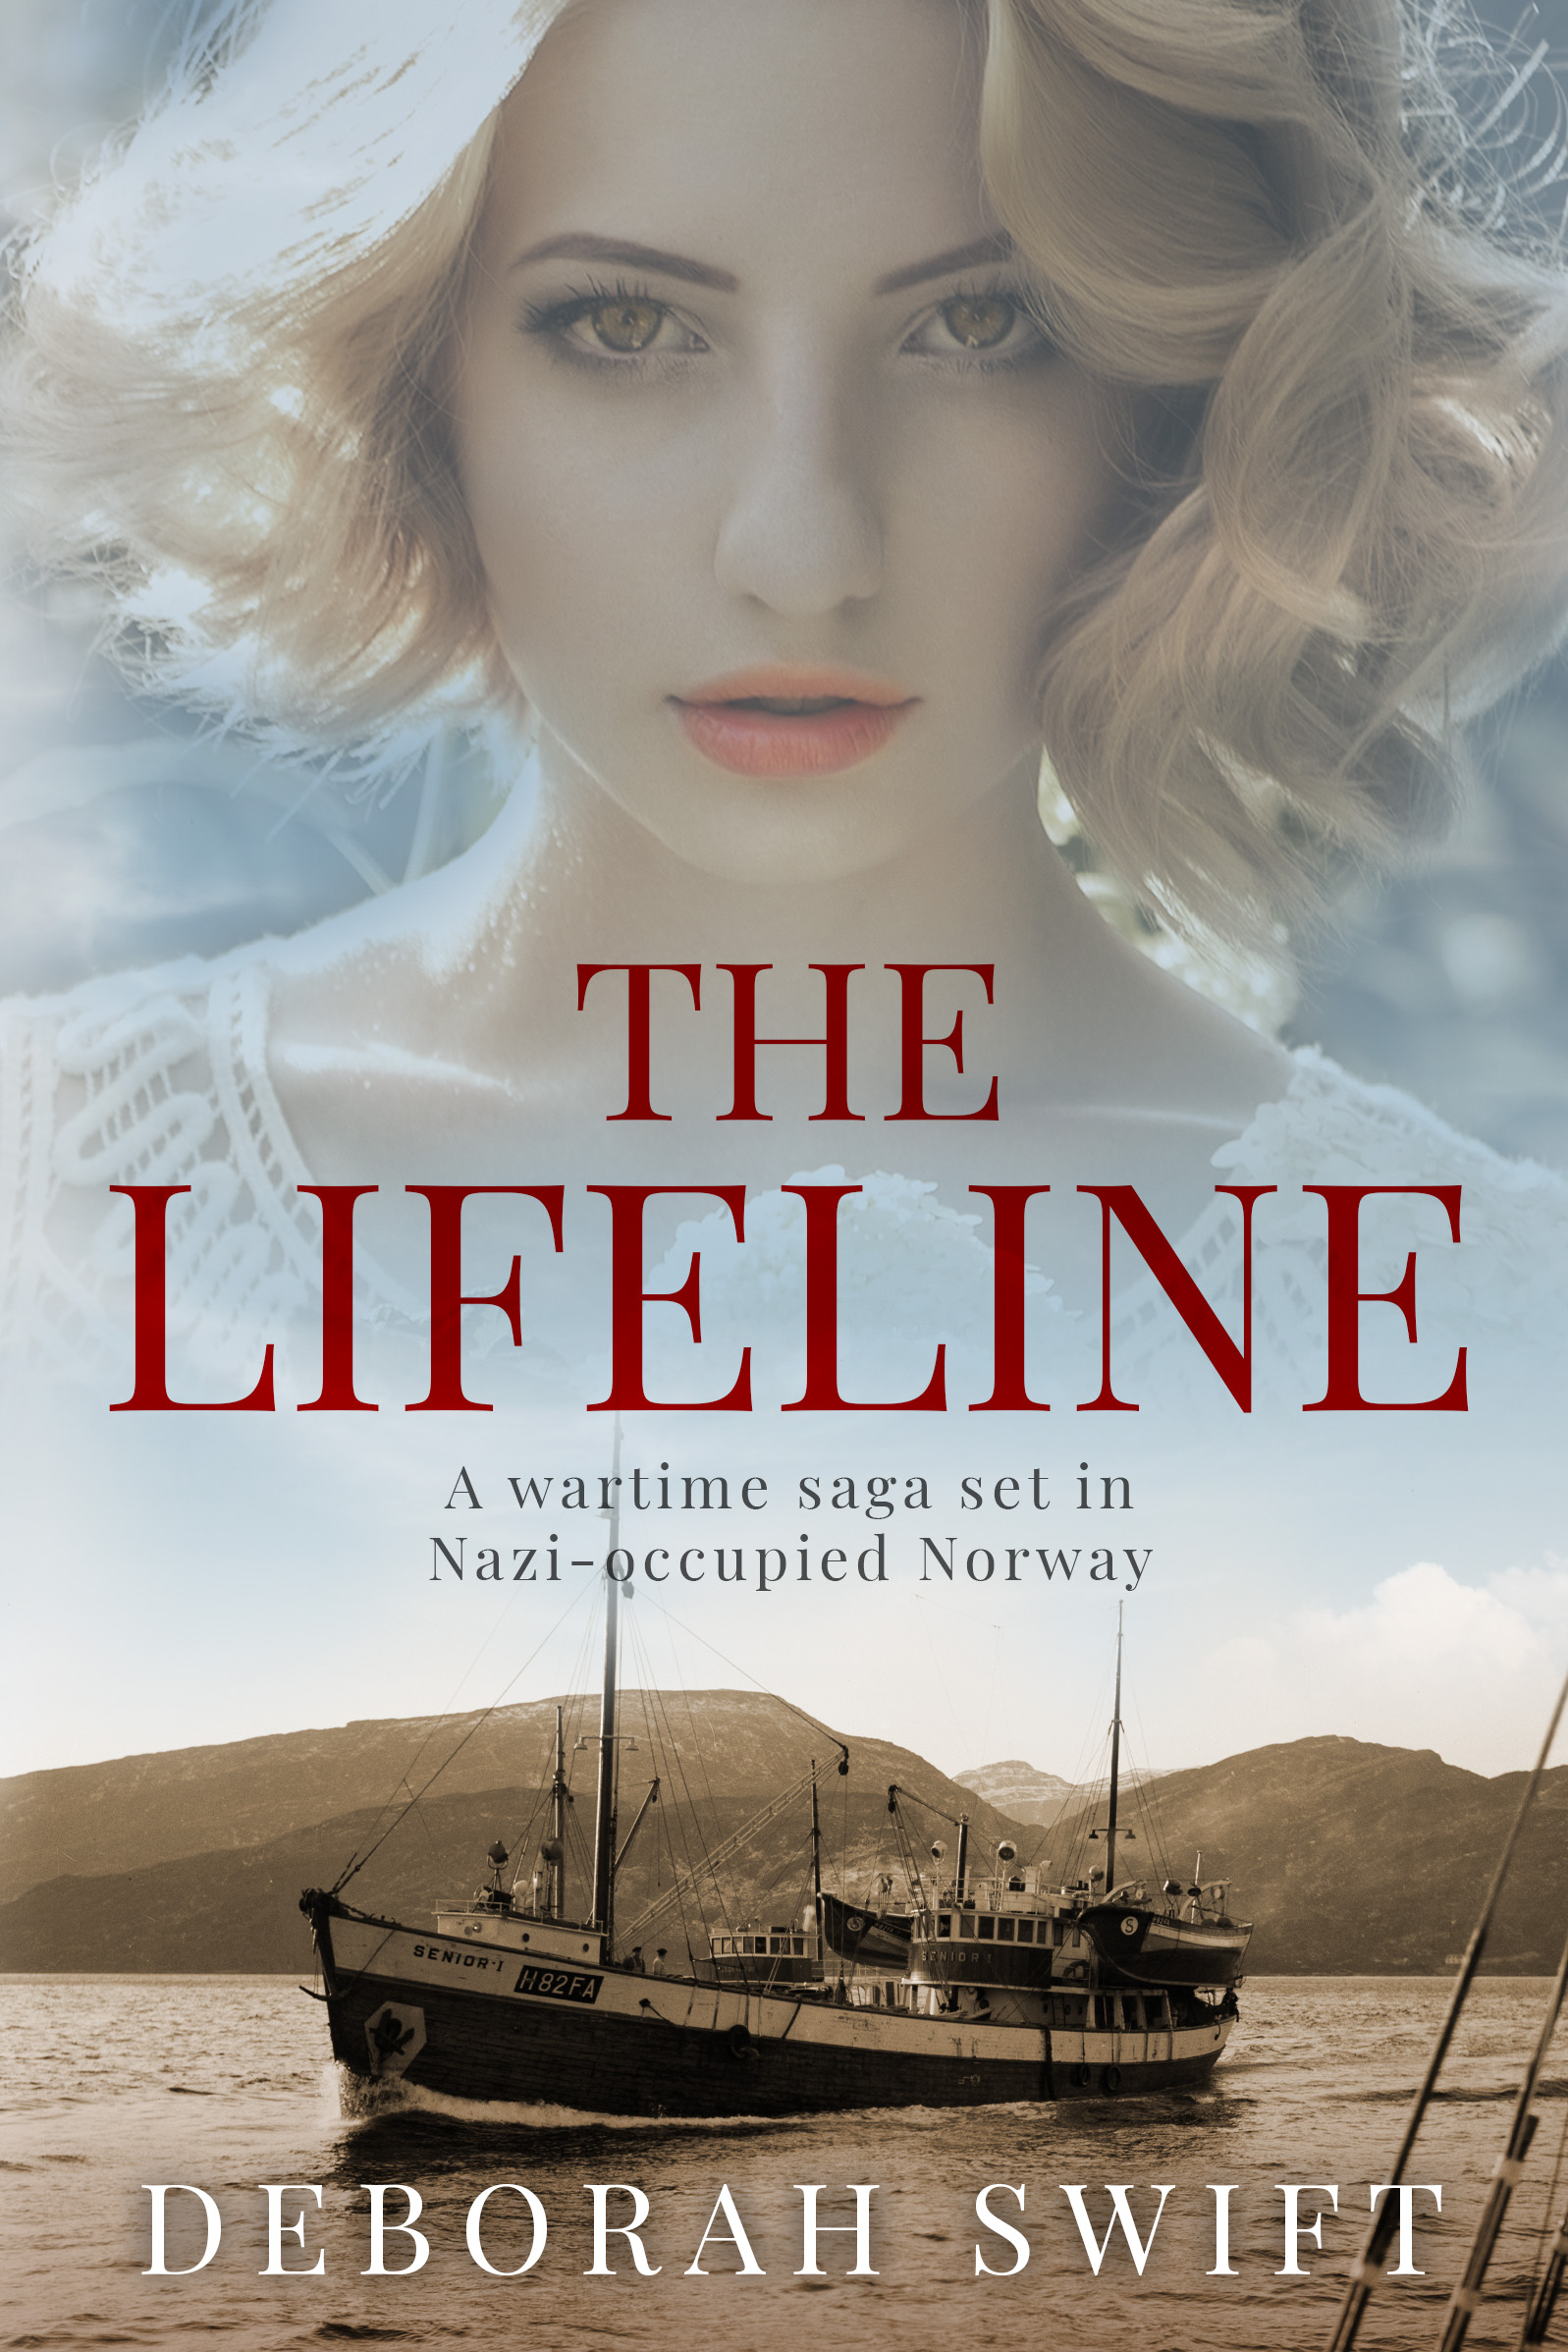 The Lifeline by Deborah Swift